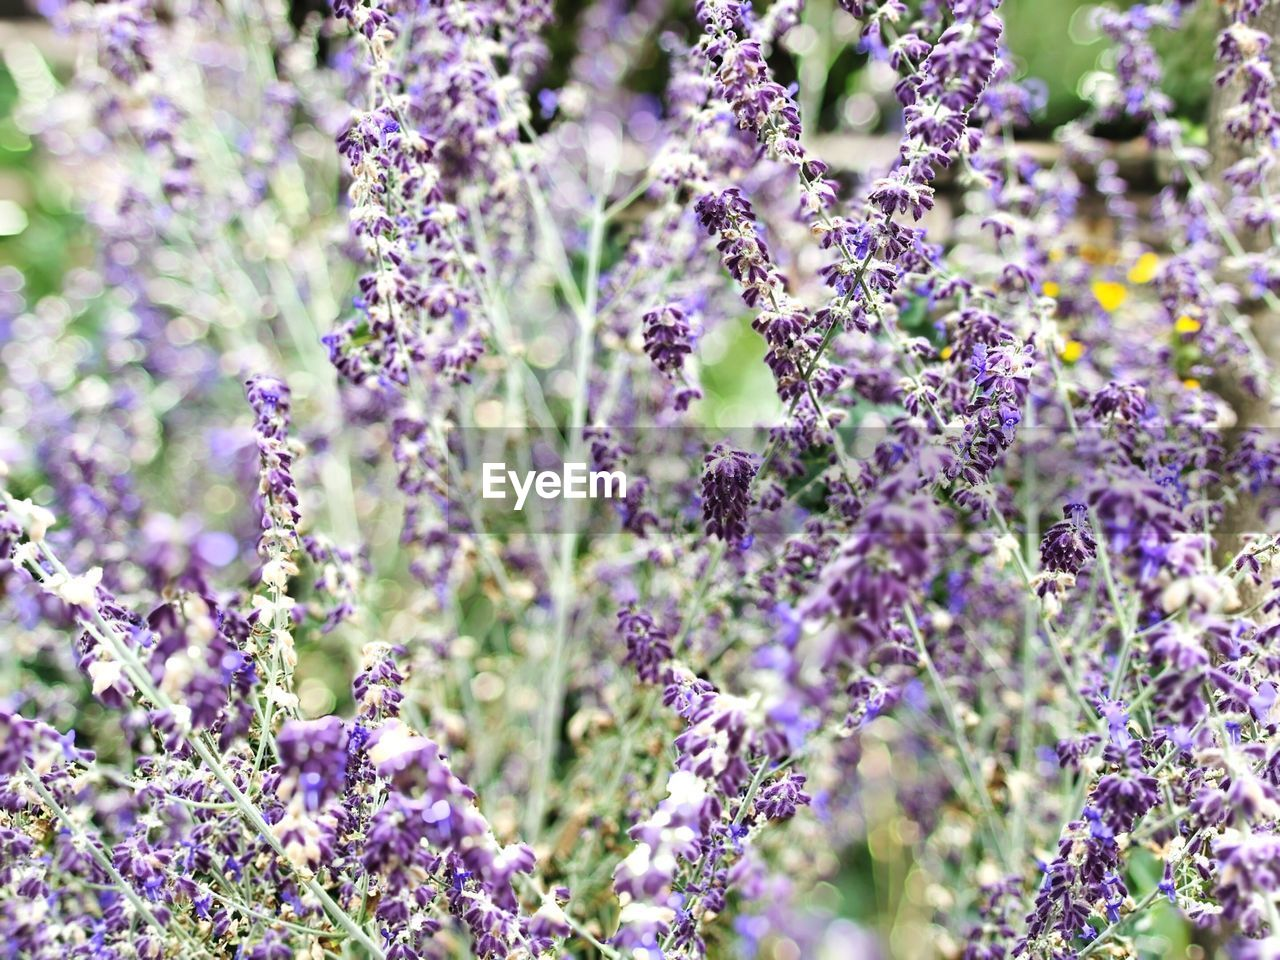 flower, flowering plant, plant, beauty in nature, growth, freshness, fragility, vulnerability, purple, lavender, close-up, no people, selective focus, day, nature, petal, field, land, lavender colored, outdoors, flower head, springtime